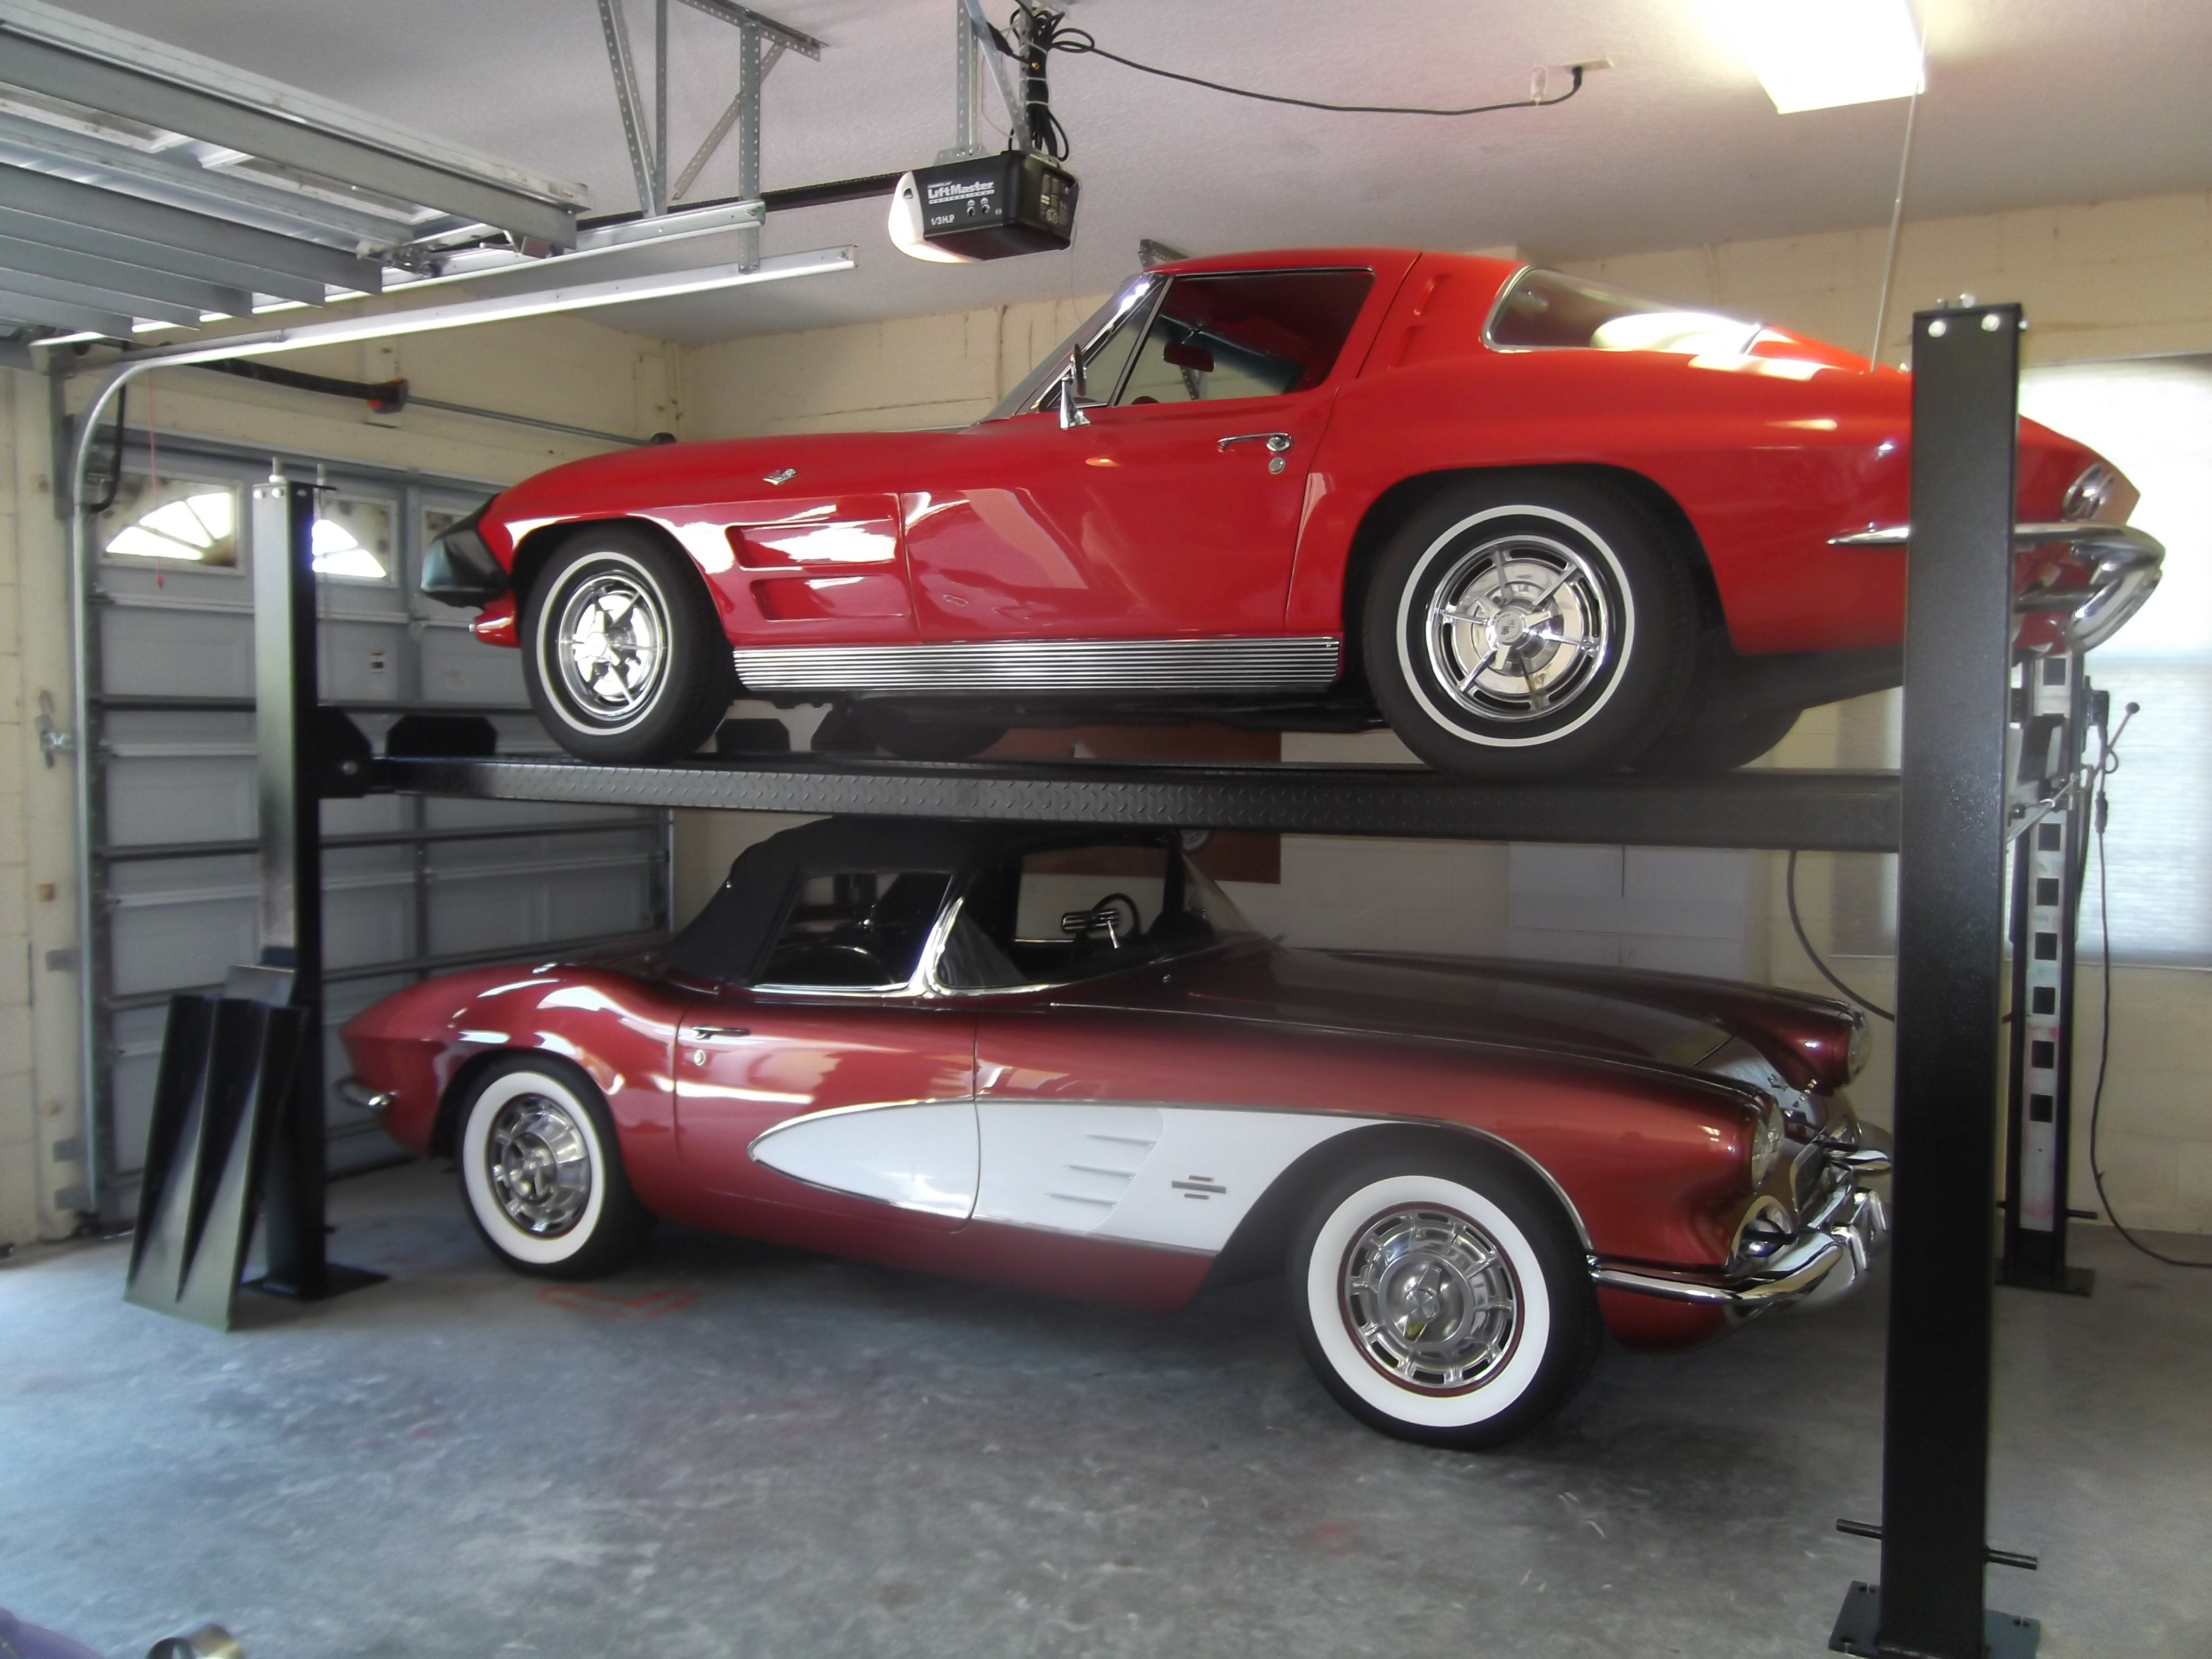 Car Lift In Garage Minimum Ceiling Height For A 4 Post Lift Corvetteforum